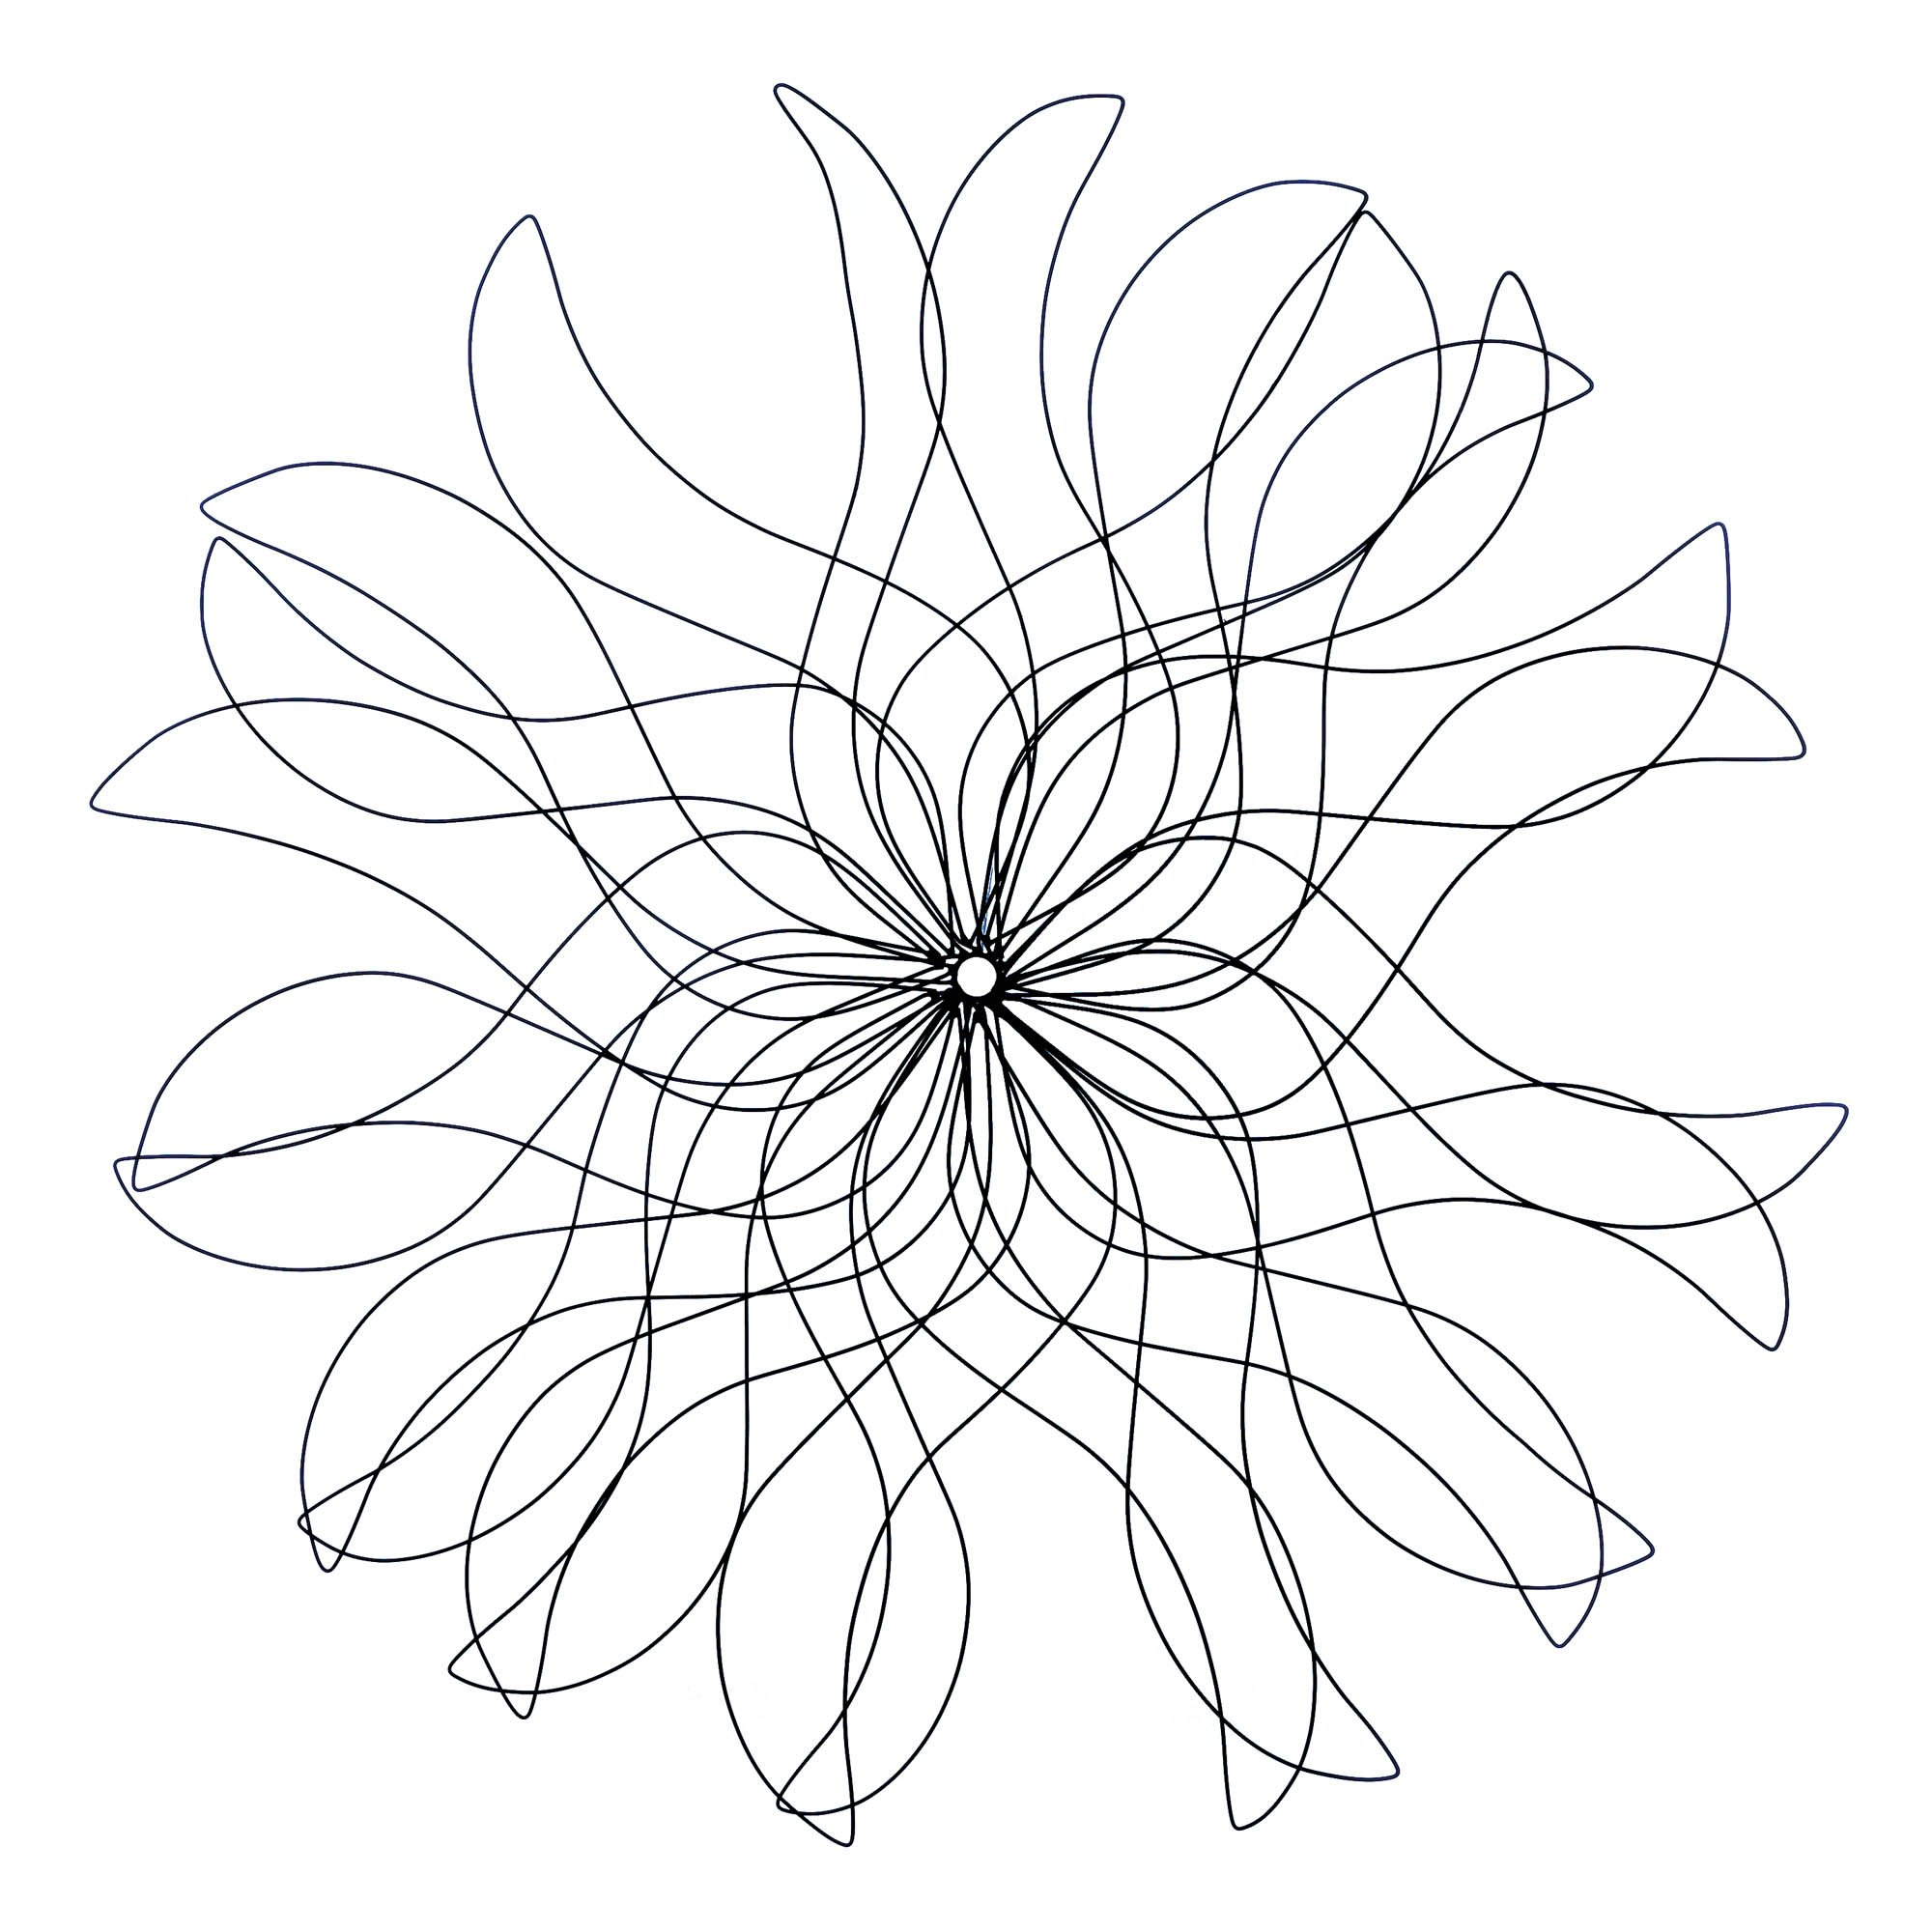 3-Foot Metal Flower Wall Decor by Accent Plus